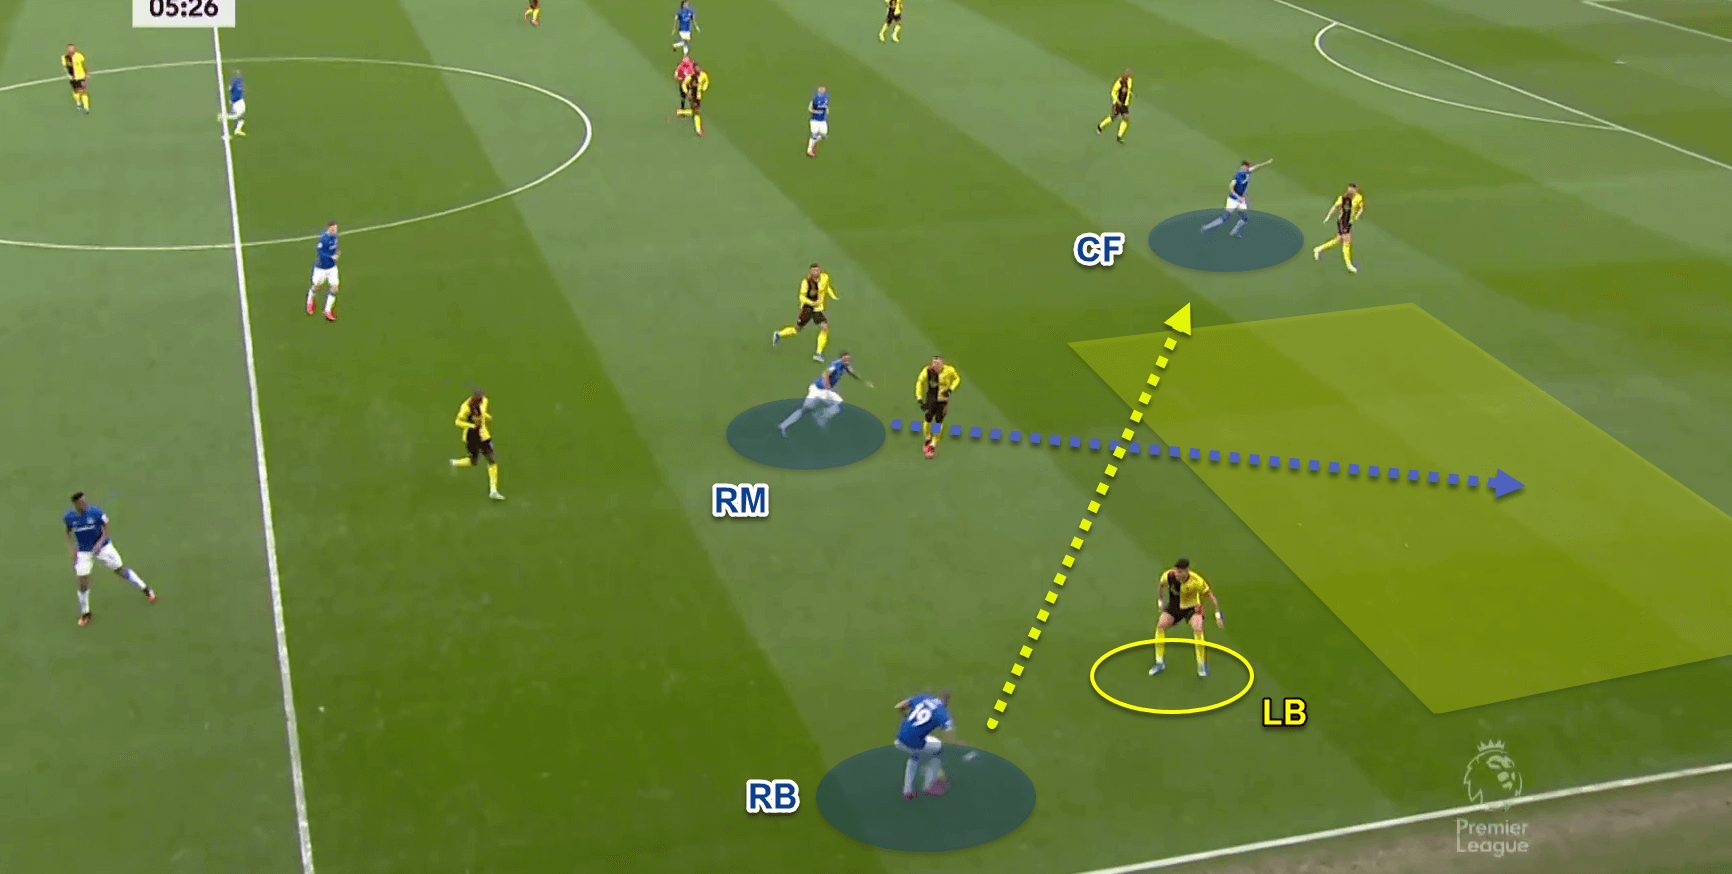 Premier League 2019/20: Watford v Everton - Tactical Analysis - tactics